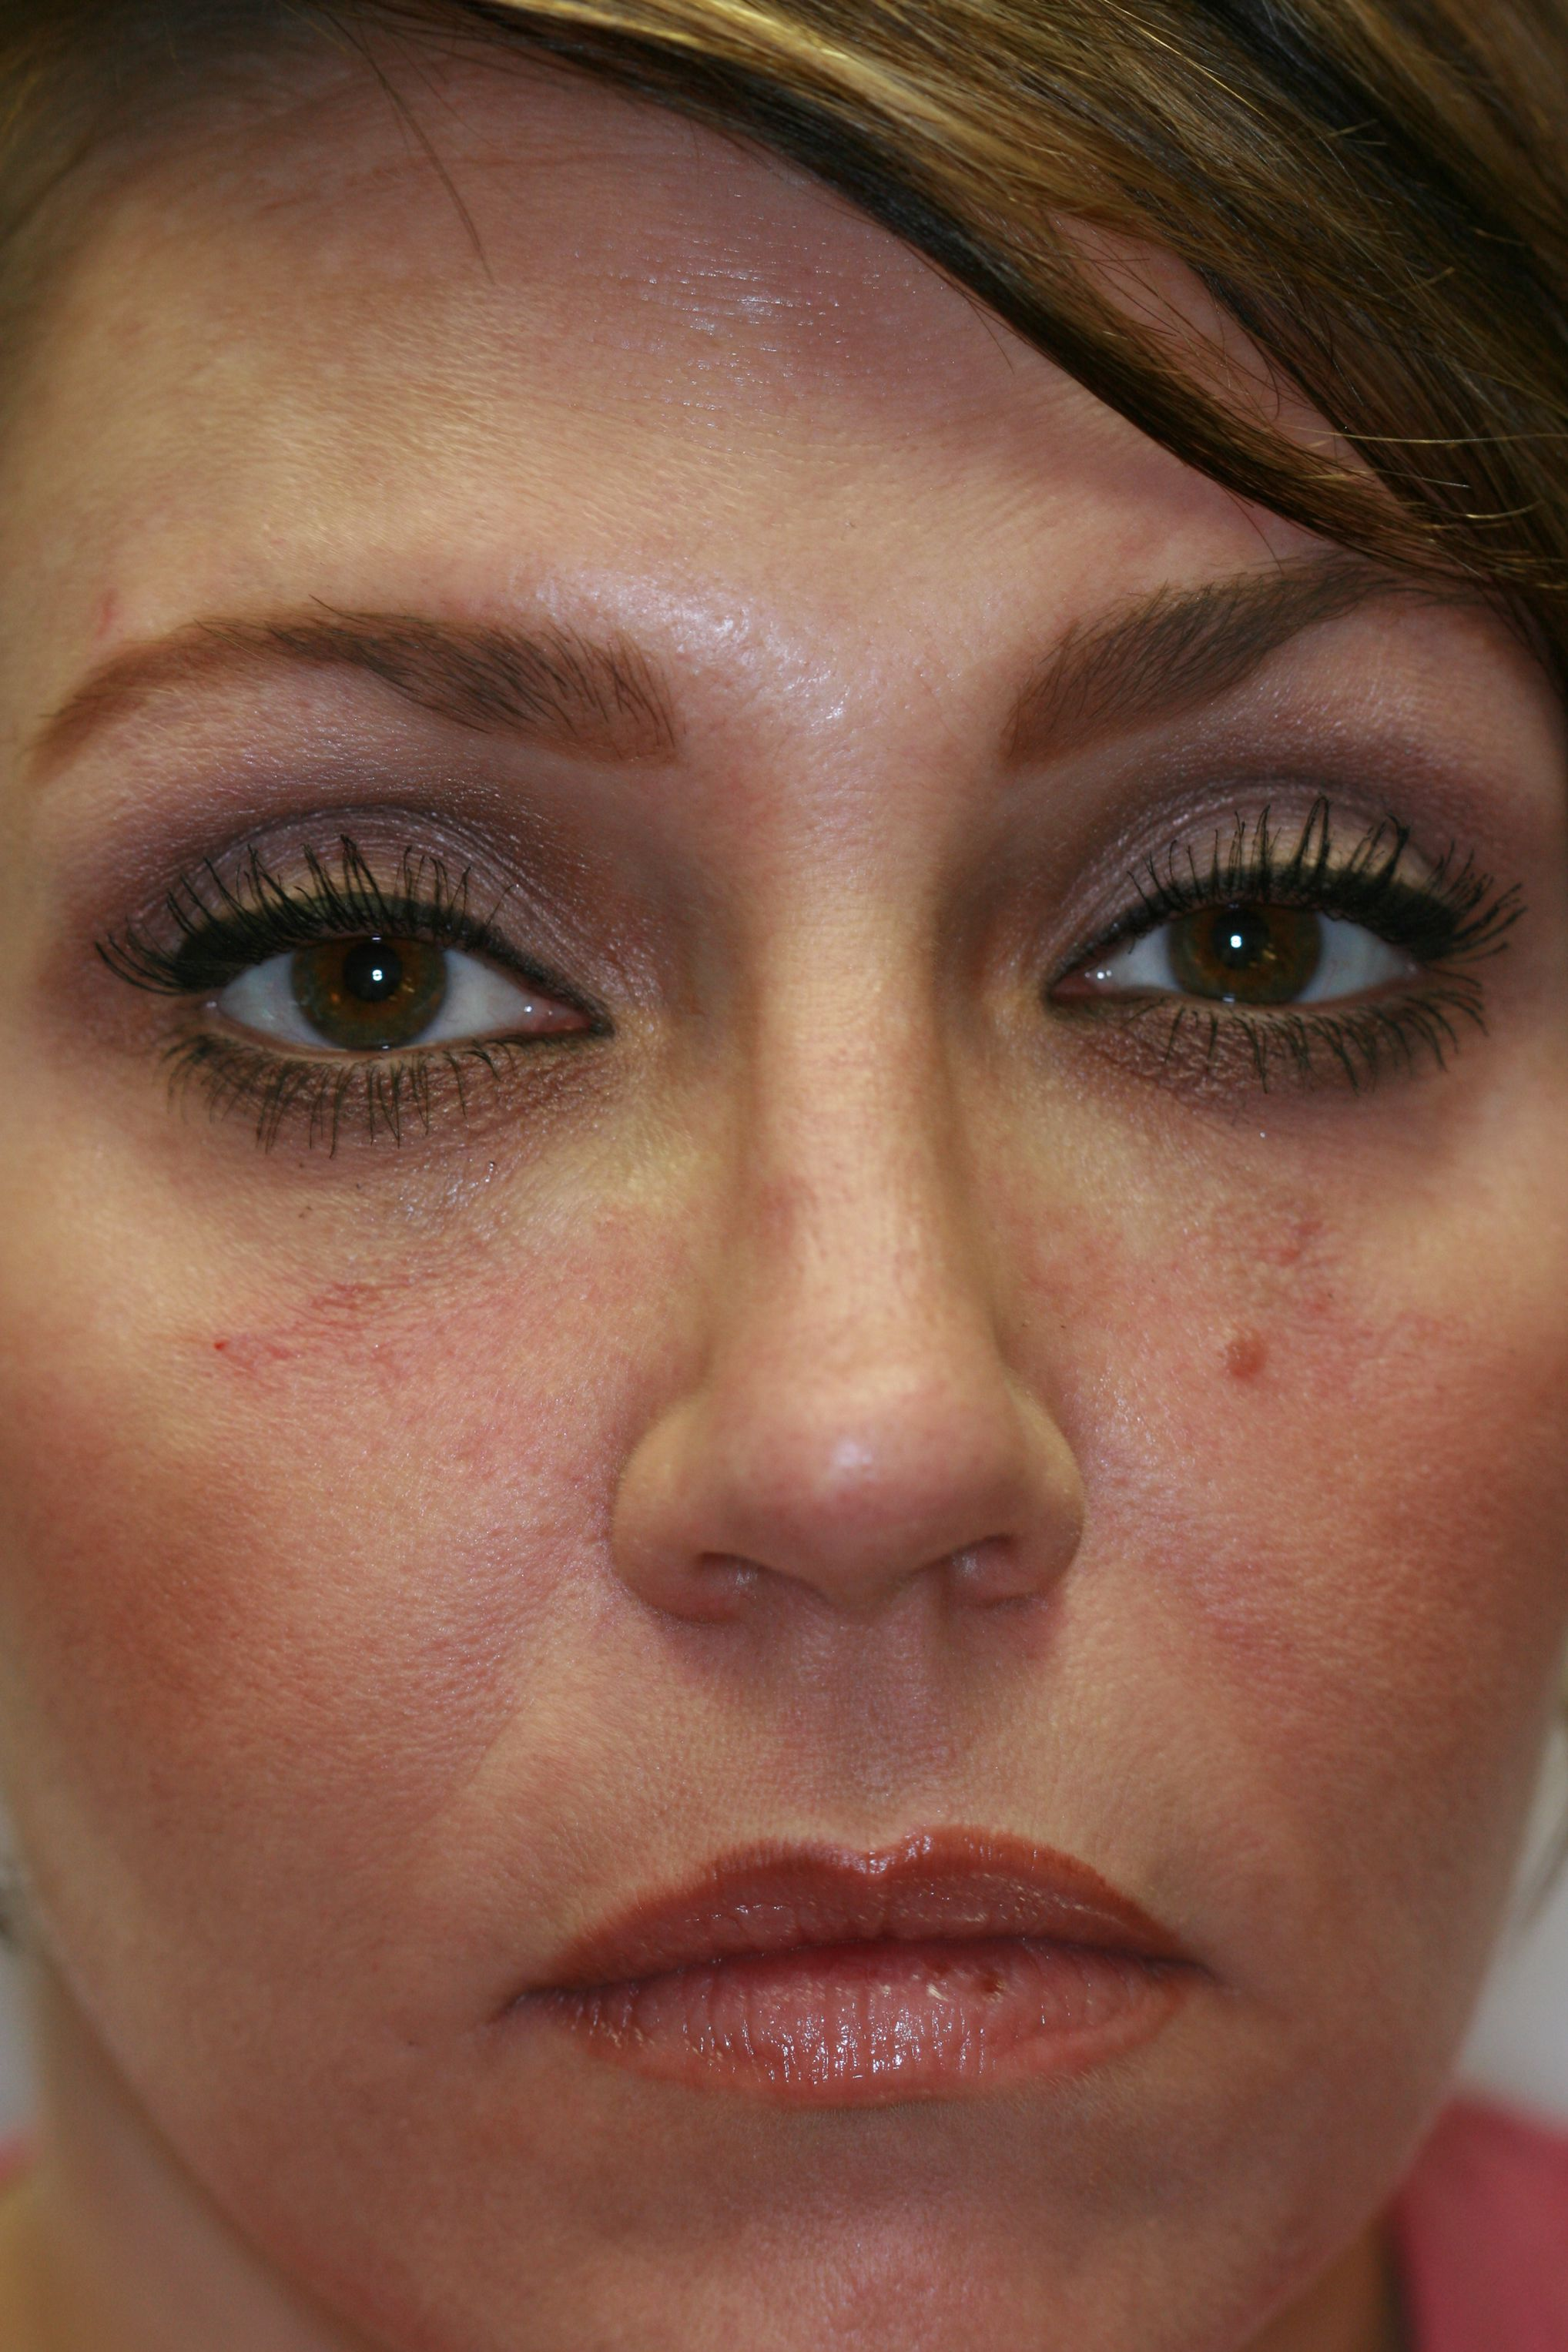 Vampire facelift (r) using prp with ha